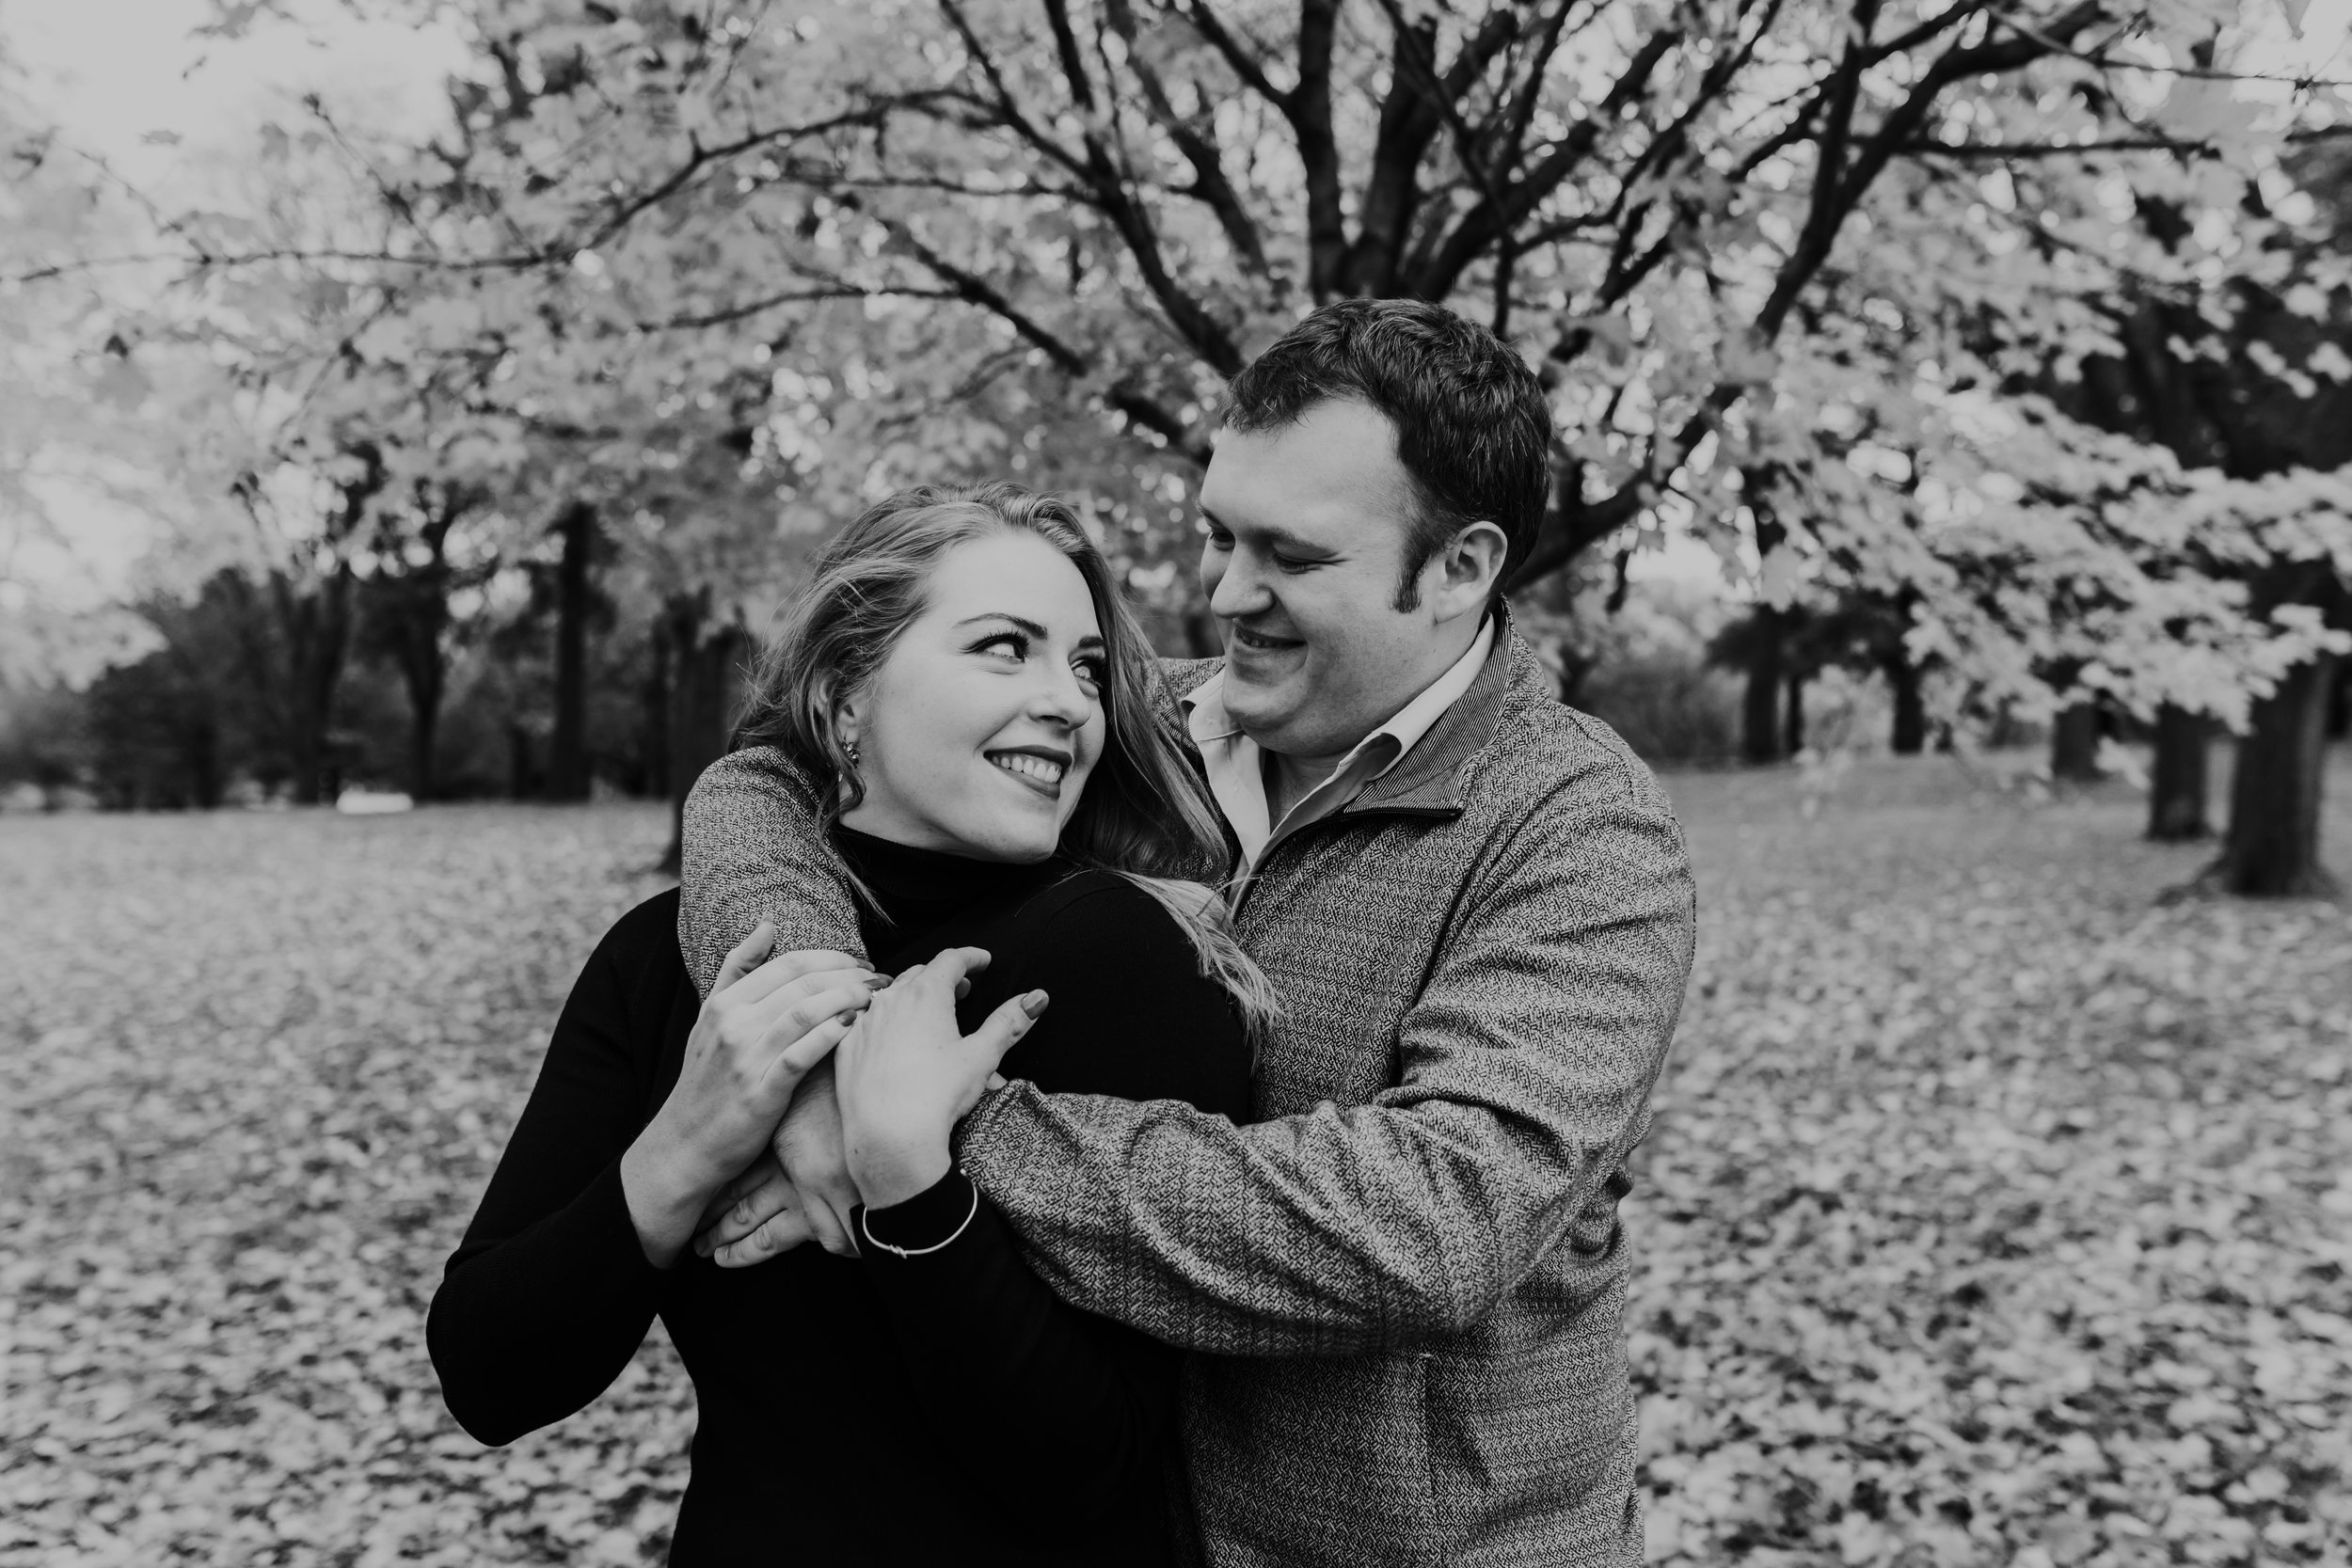 Meghan & Igor - Engaged - Nathaniel Jensen Photography - Omaha Nebraska Wedding Photograper-25.jpg